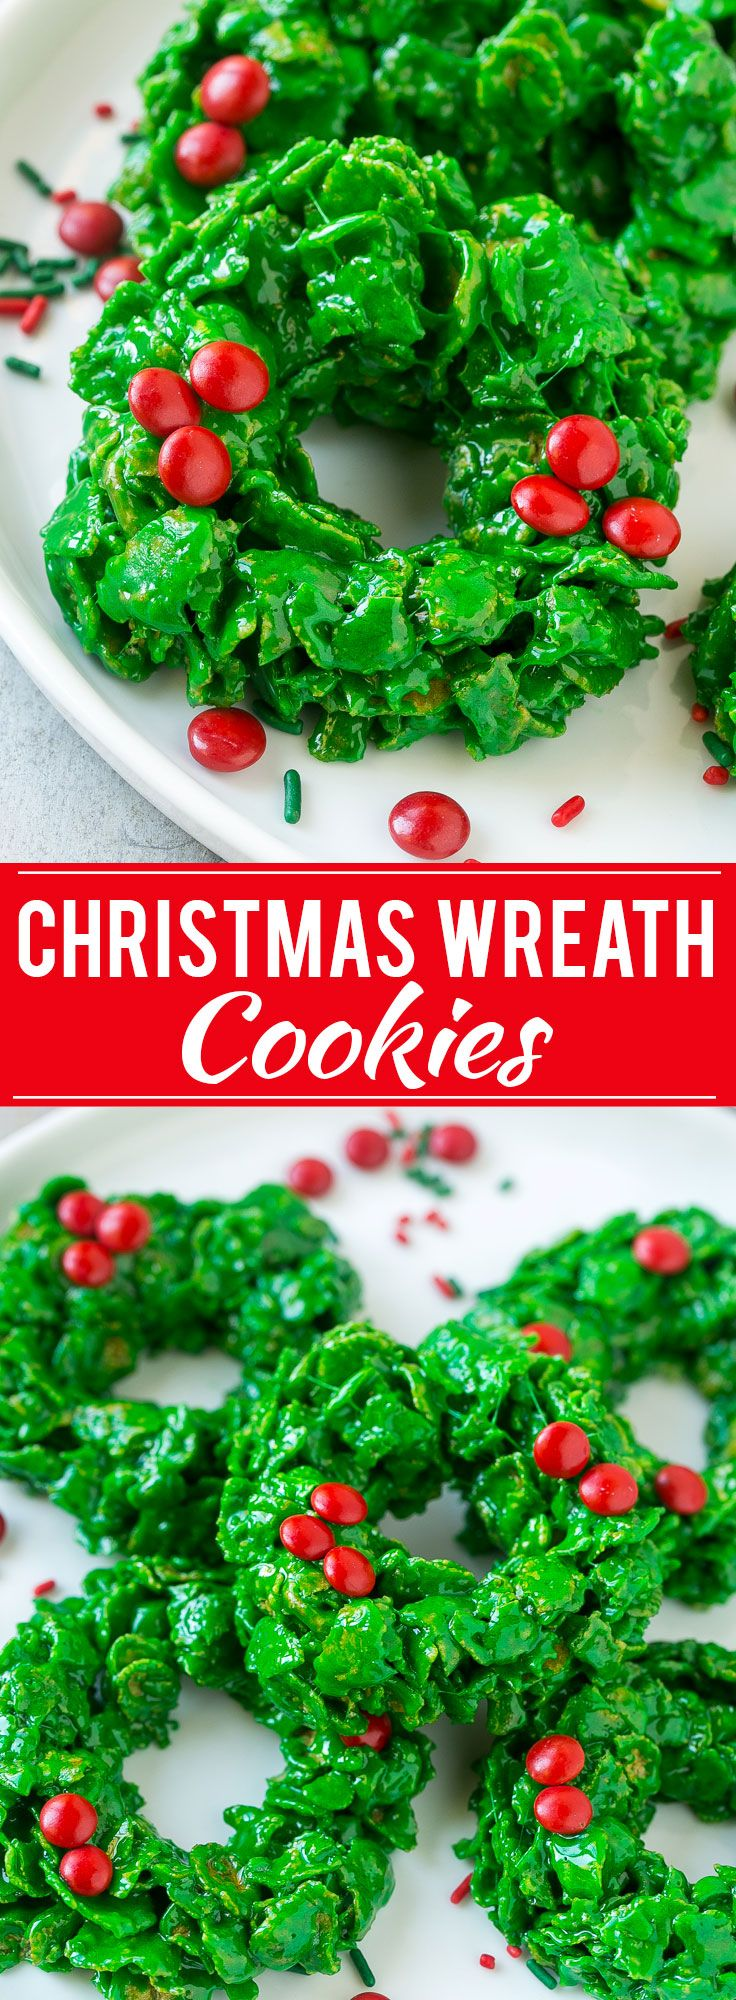 Christmas dessert table decoration ideas - Christmas Wreath Cookies